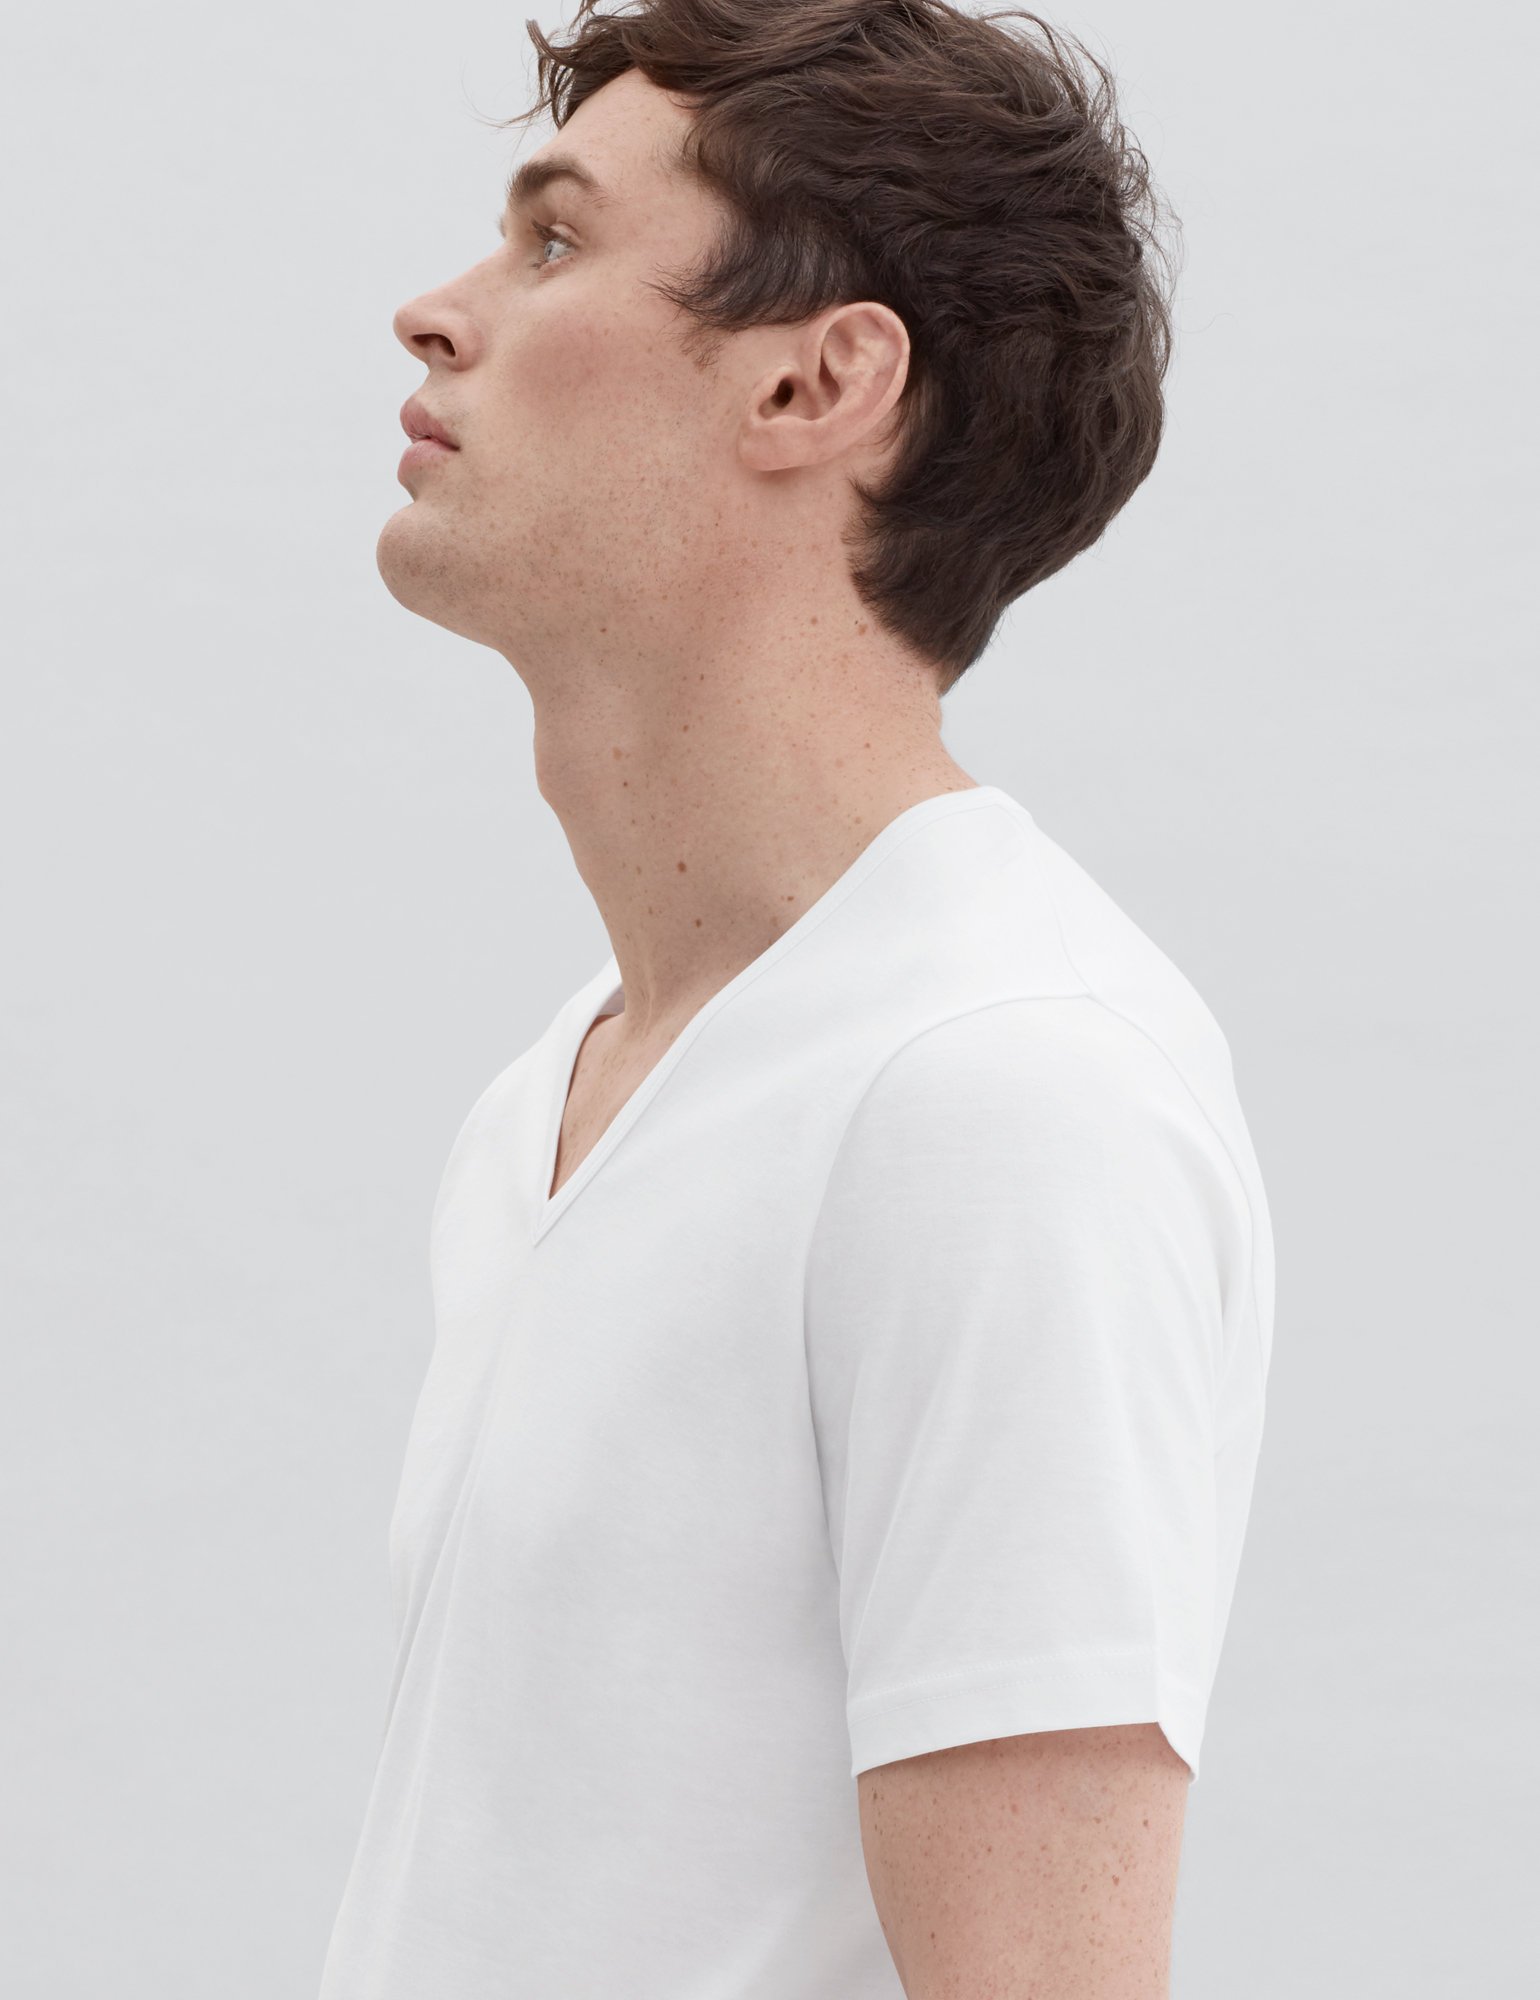 Low Cut Mens T Shirts